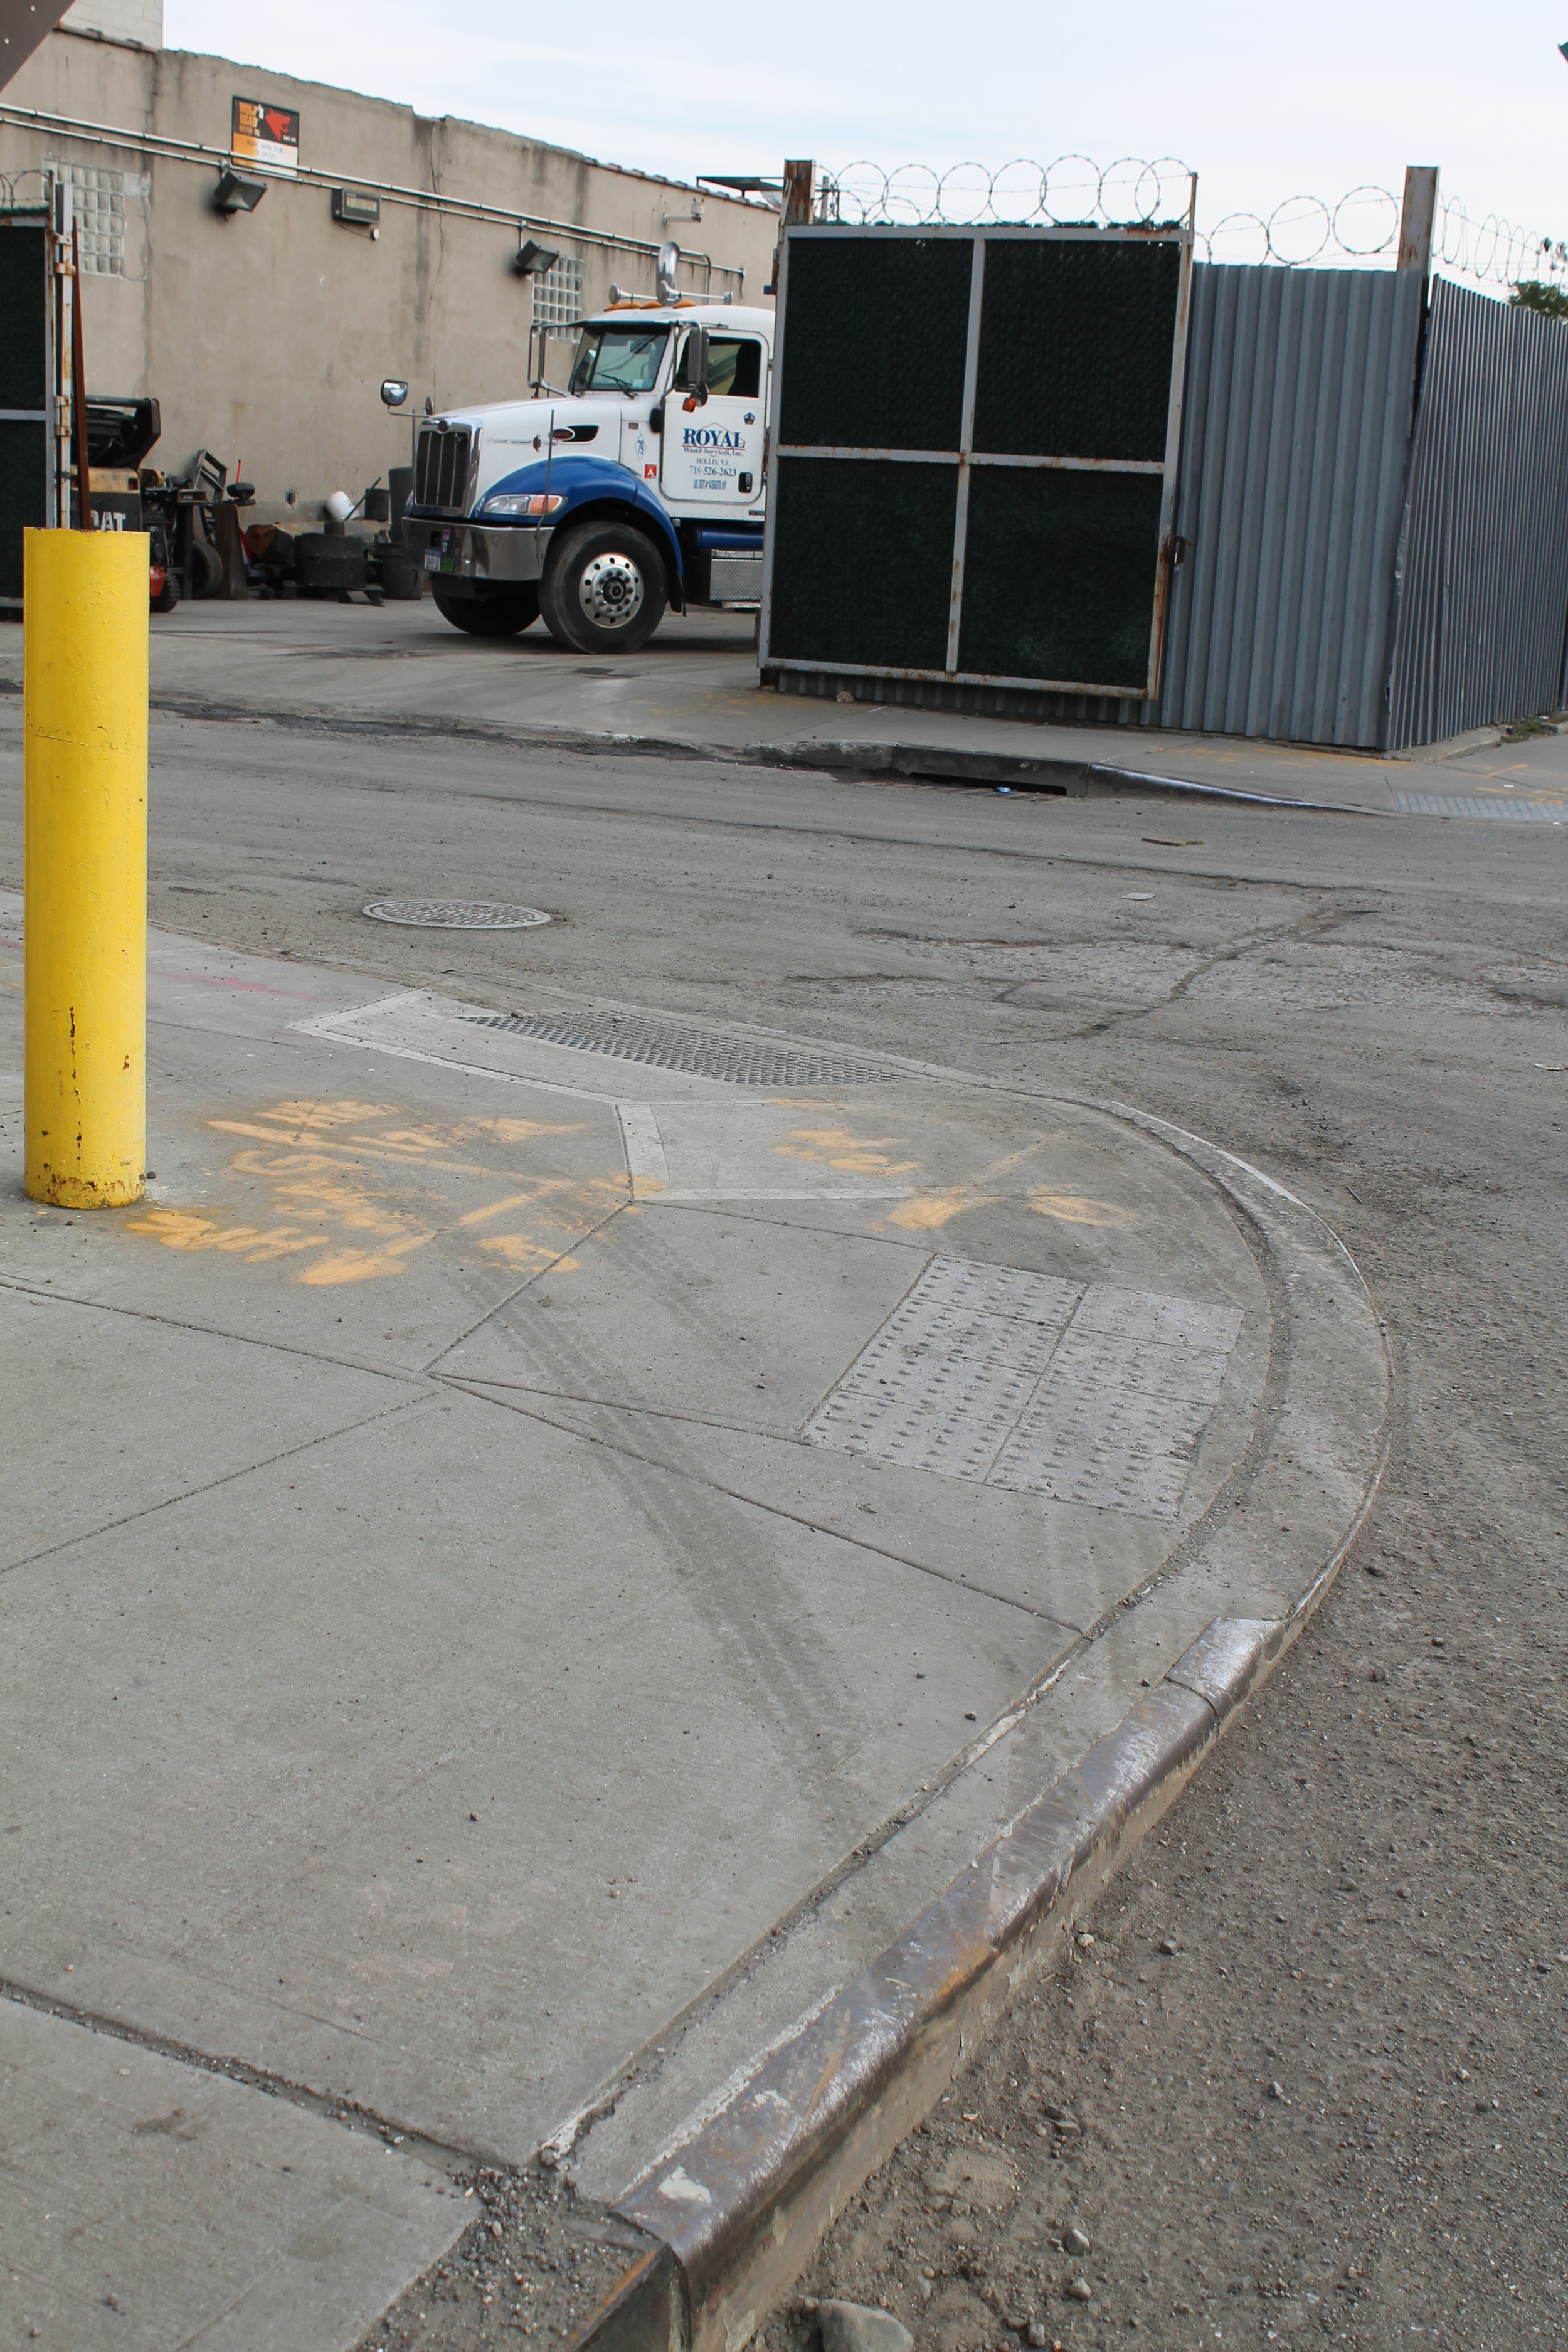 Some large and heavy commercial trucks can only make wide right turns onto 170th Street in Jamaica, Queens, byjumping their wheels onto the sidewalk, making use of sidewalks potentially dangerous. These tire tracks were photographed on October 28, 2014. Source : Louis Flores